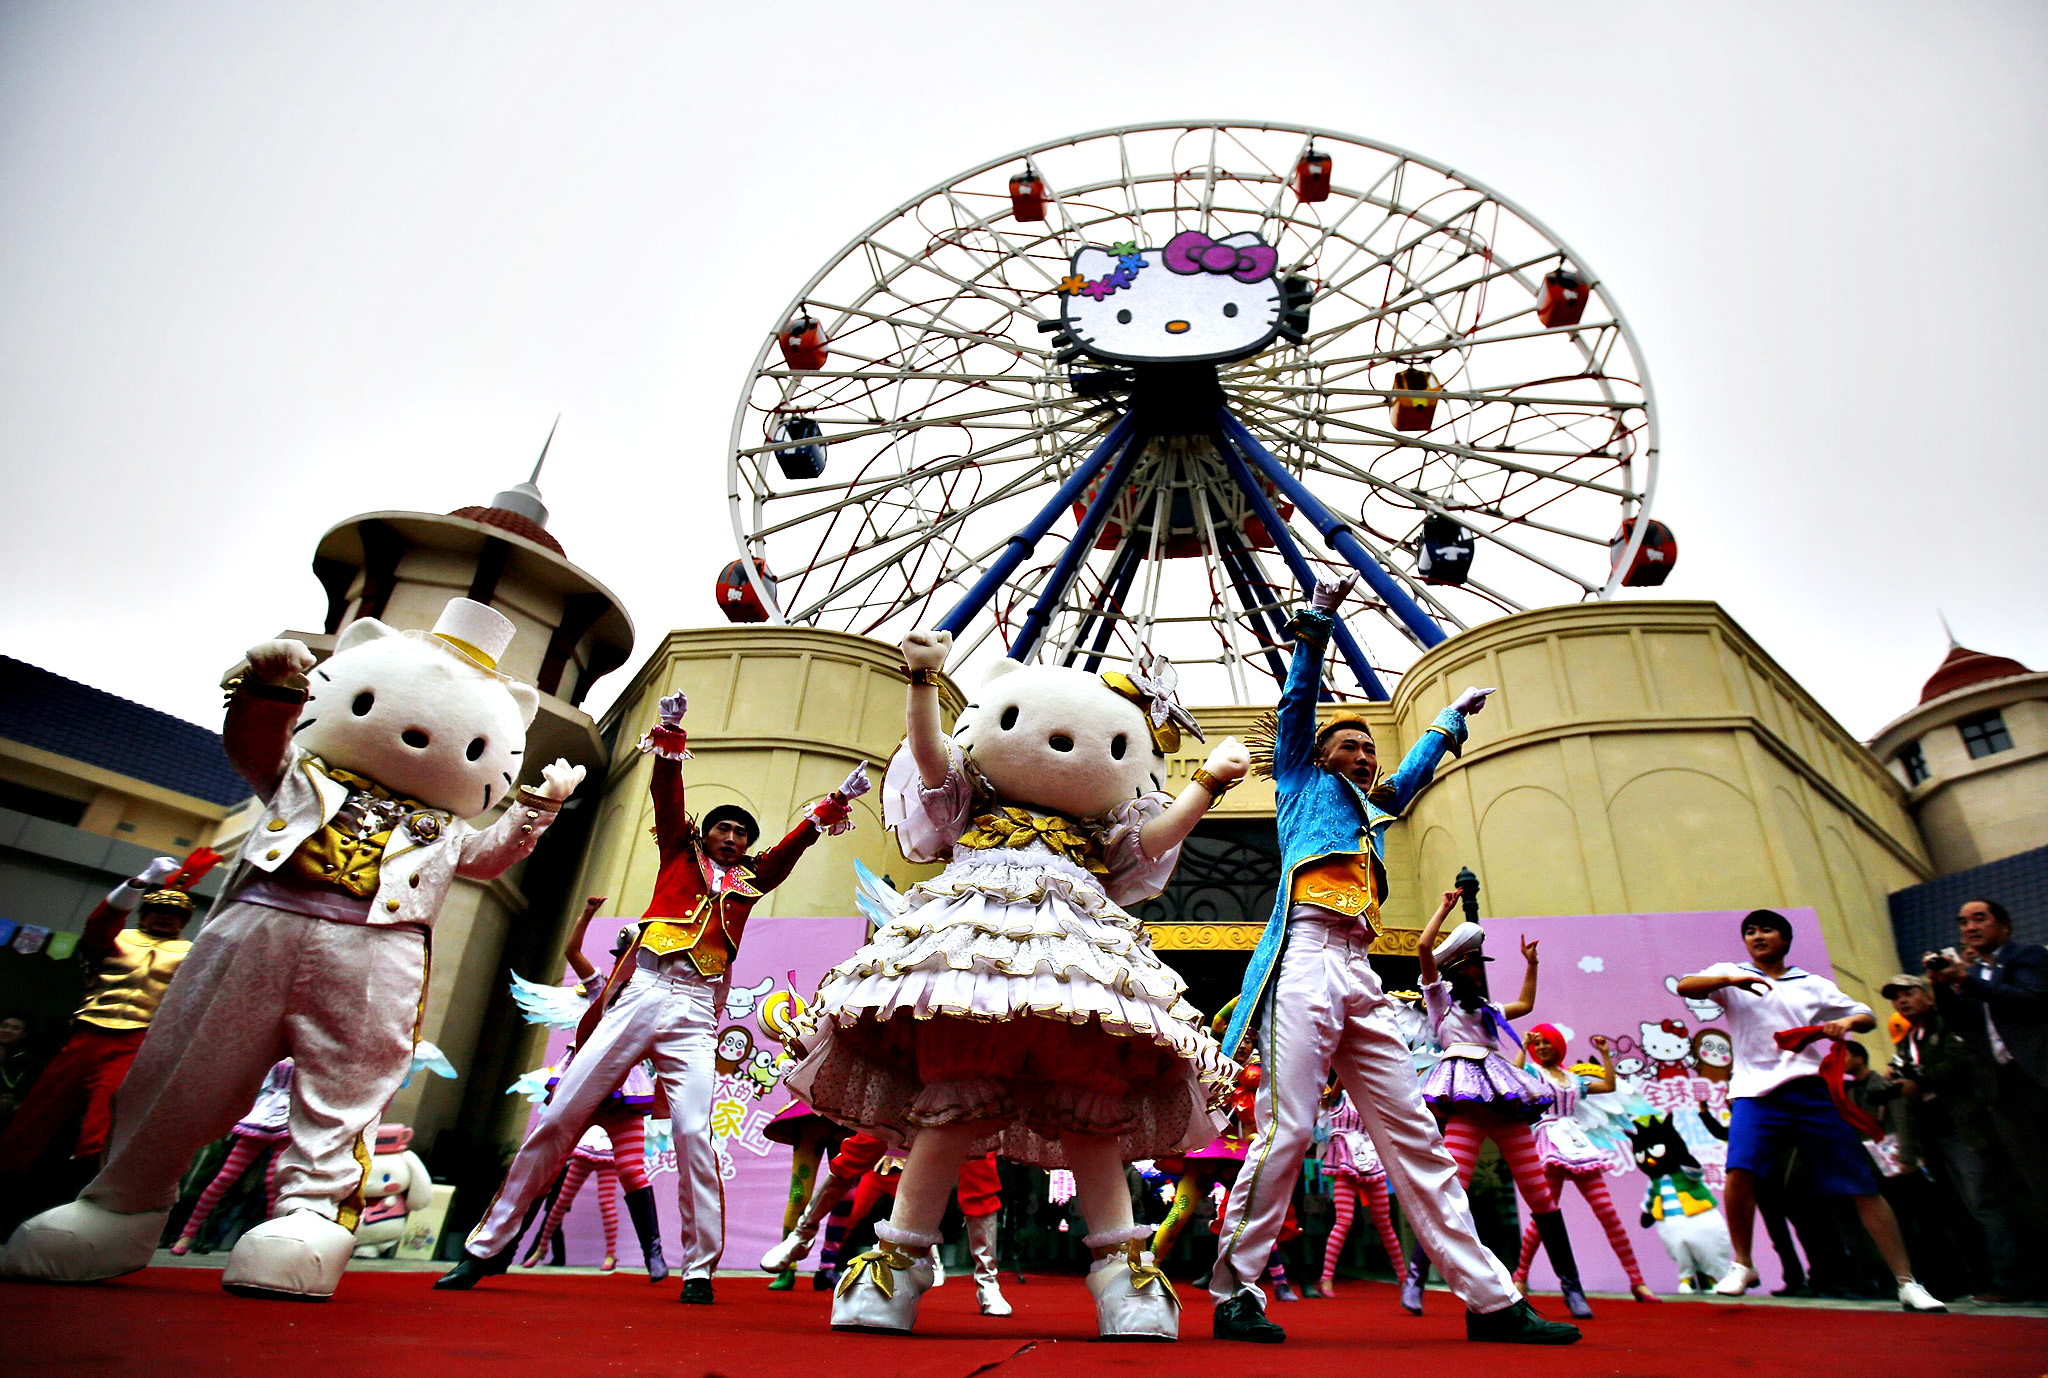 Dancers perform during an inauguration ceremony of a Hello Kitty amusement park in Anji, Zhejiang province November 28, 2014. With an investment of $325 million, Hello Kitty Park will be China's first large scale amusement park scheduled to open to the public on New Year's day. According to state media, there are nearly 60 theme parks being built across China right at the moment.